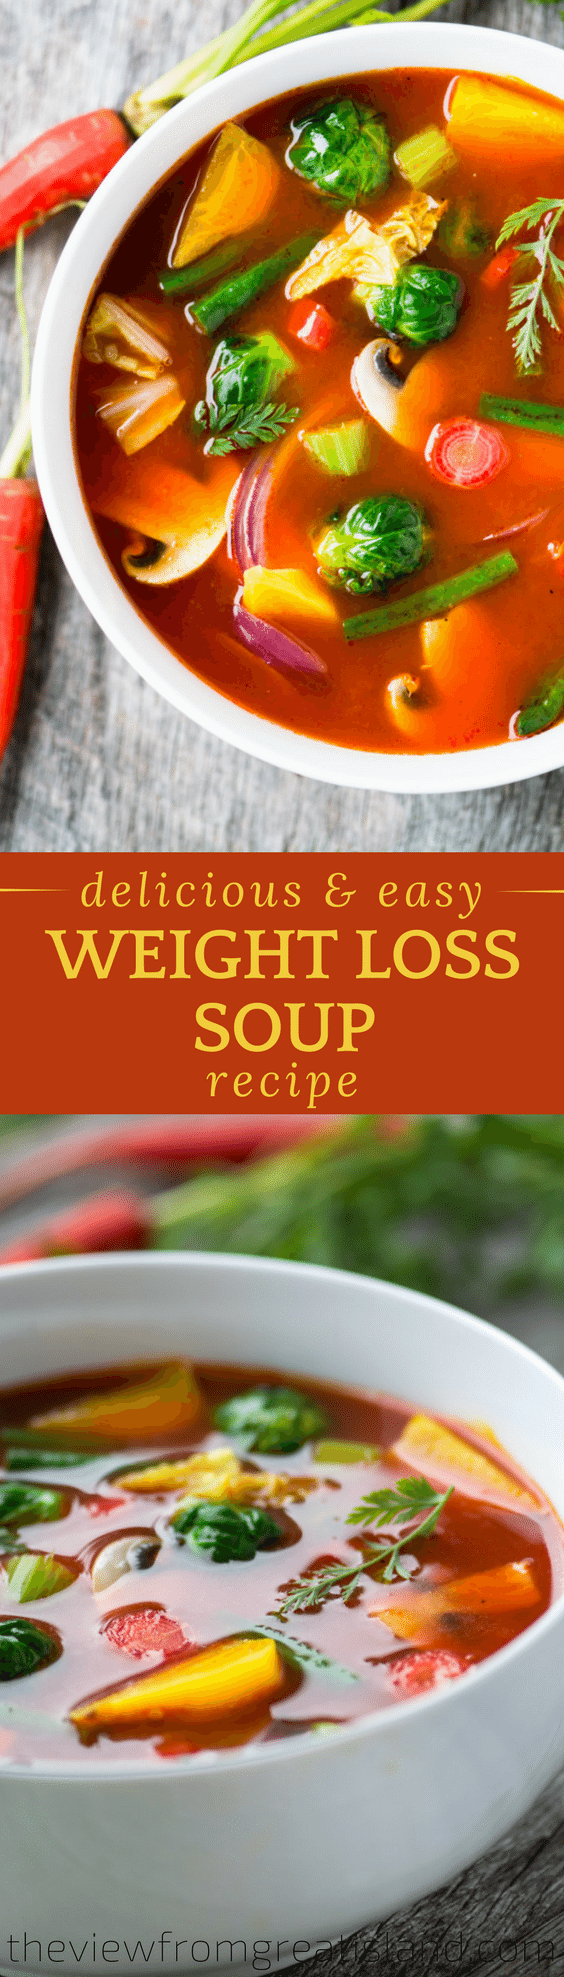 This revitalizing weight loss soup is satisfying and delicious. I don't know where I'd be without it ~ probably a few pounds heavier, that's for sure! #soup #weightlossrecipe #weightlosssoup #weightwatchers #dietsoup #diet #healthysoup #lowcalorierecipes #vegetablesoup